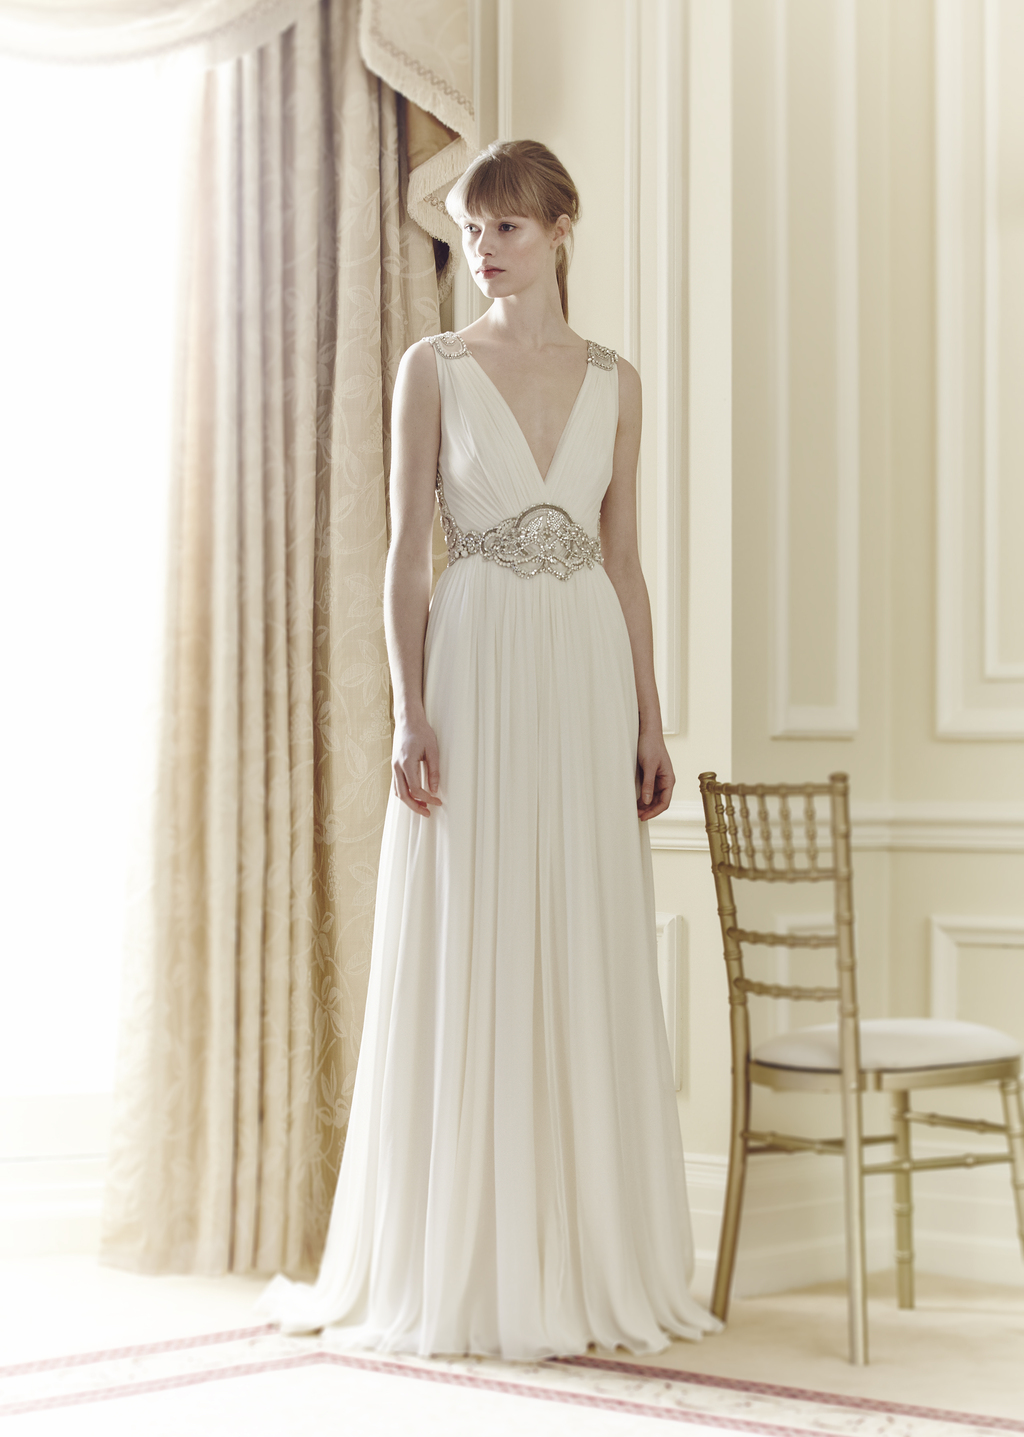 Jenny-packham-bridal-collection-spring-summer-2014-wedding-dress-daphne.full